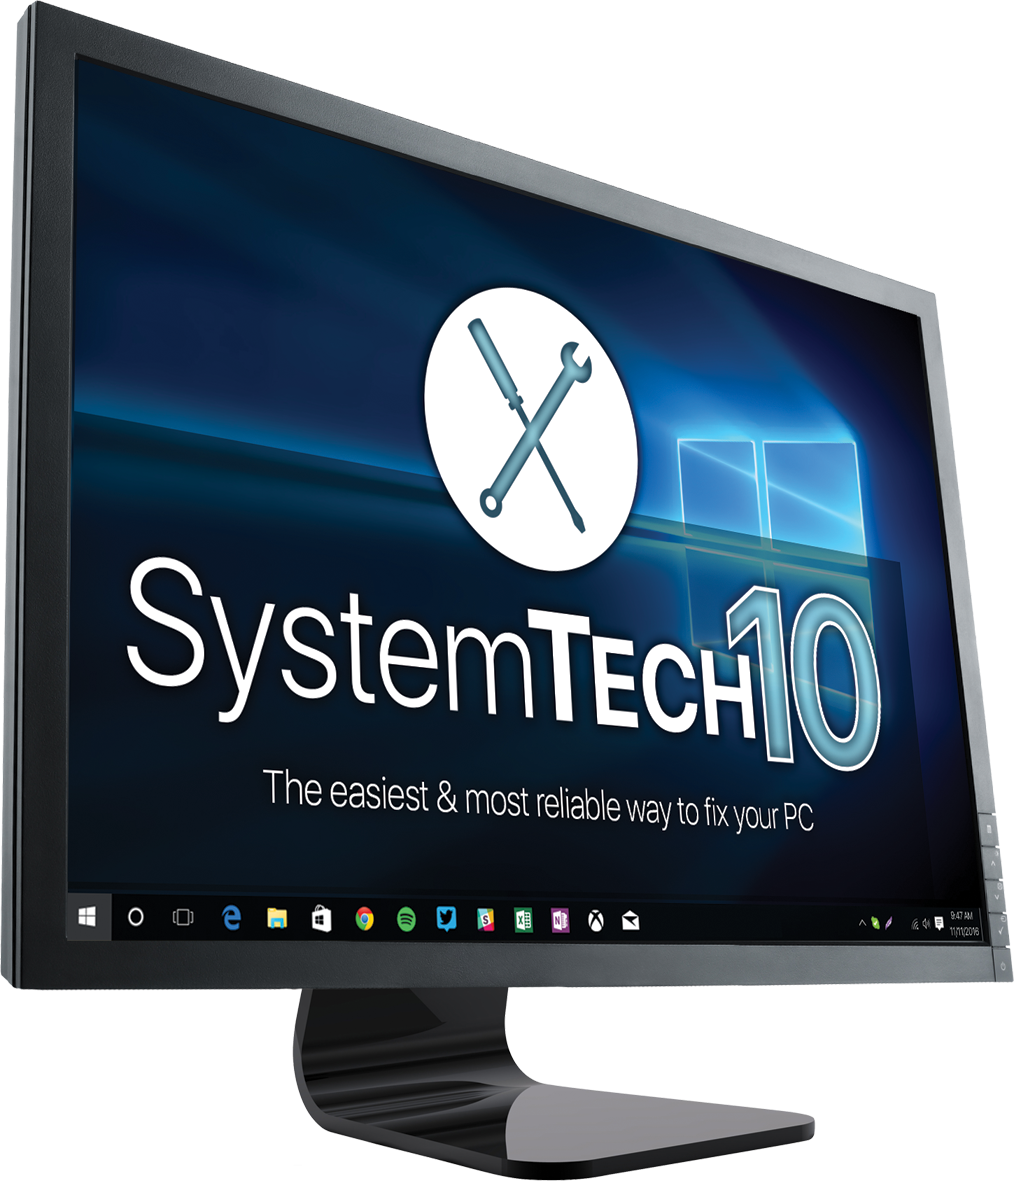 SystemTech 10 monitor